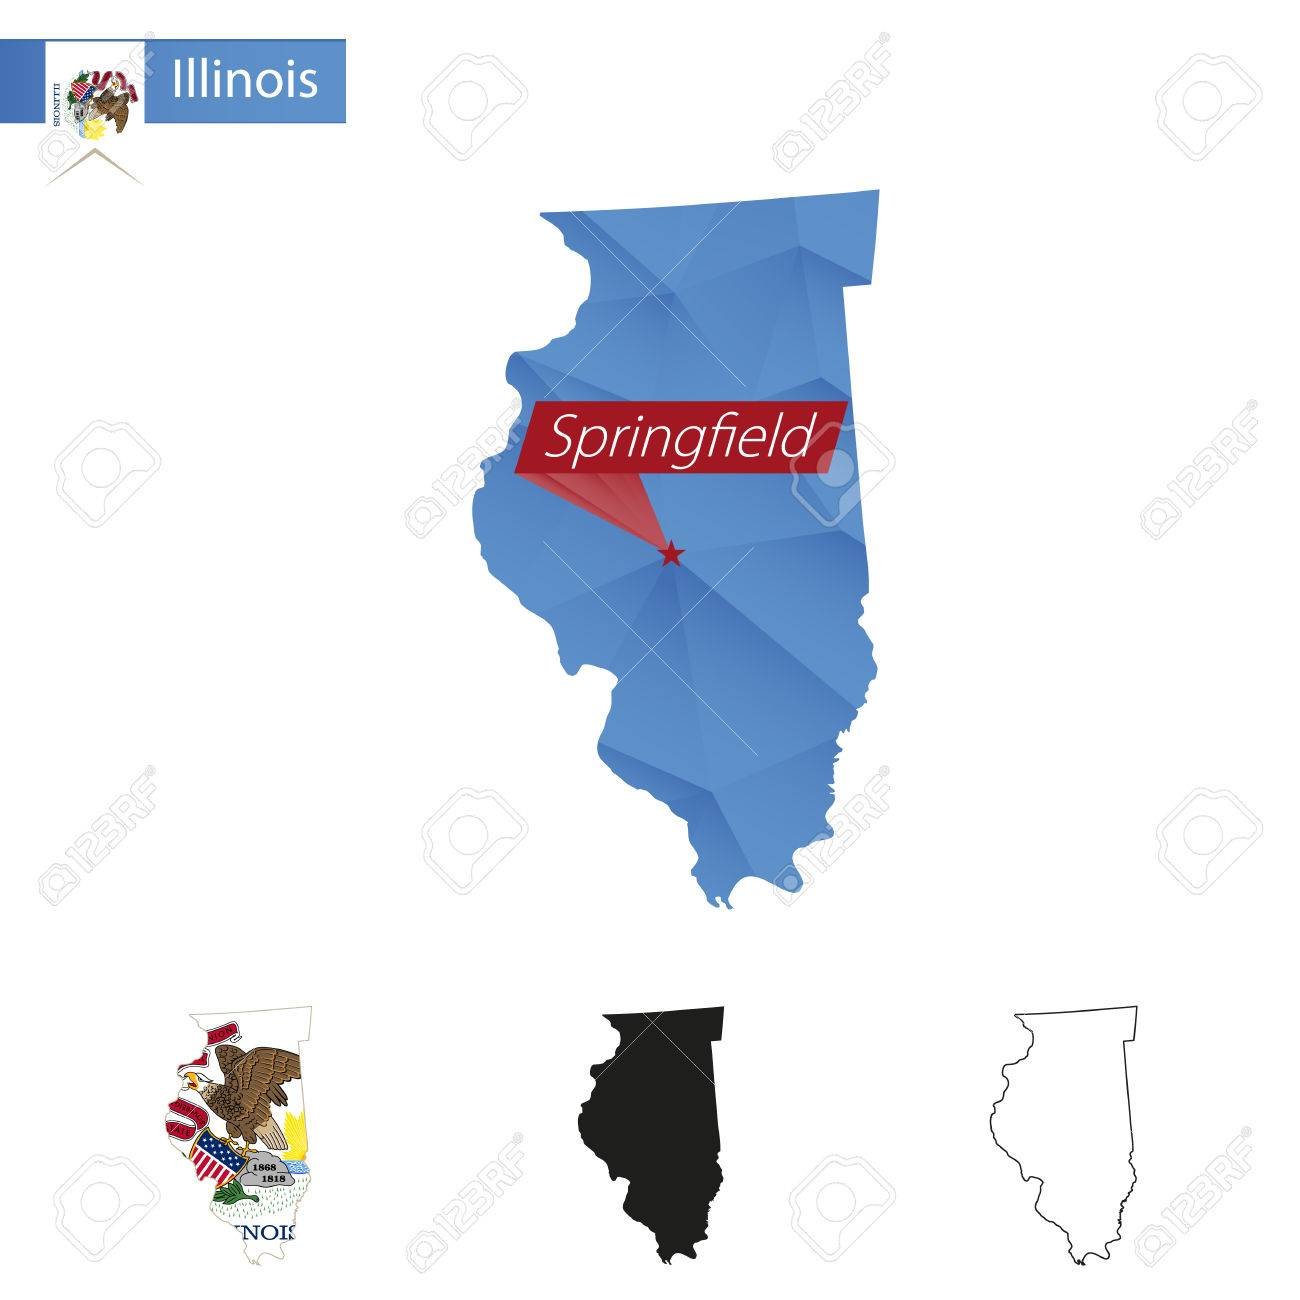 State Of Illinois Blue Low Poly Map With Capital Springfield - Map of illinois with capital